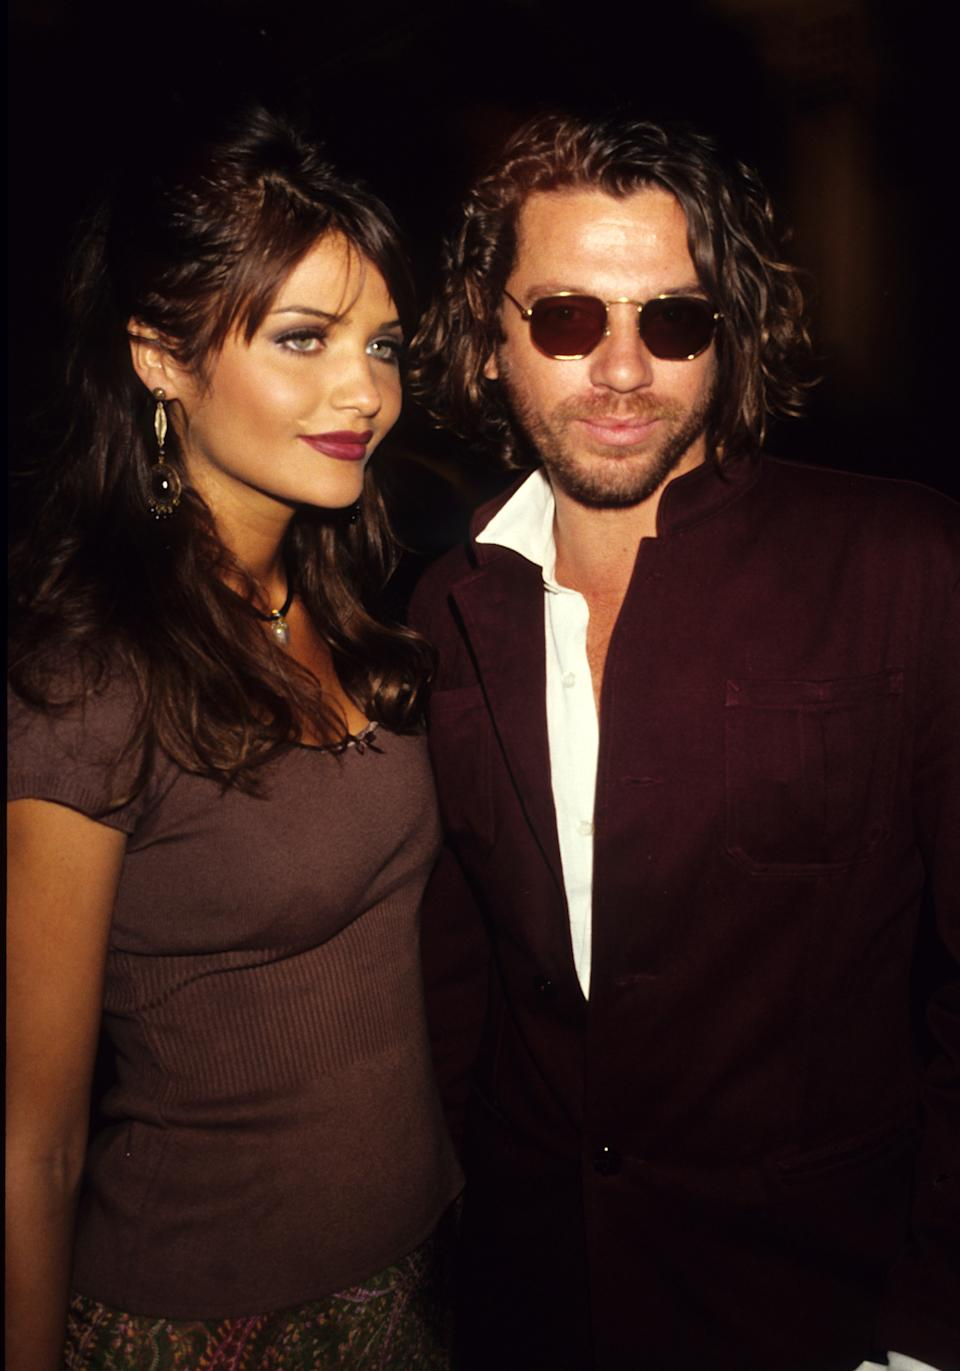 Helena Christensen and Michael Hutchence dated for four years. (Photo: Foc Kan/WireImage)